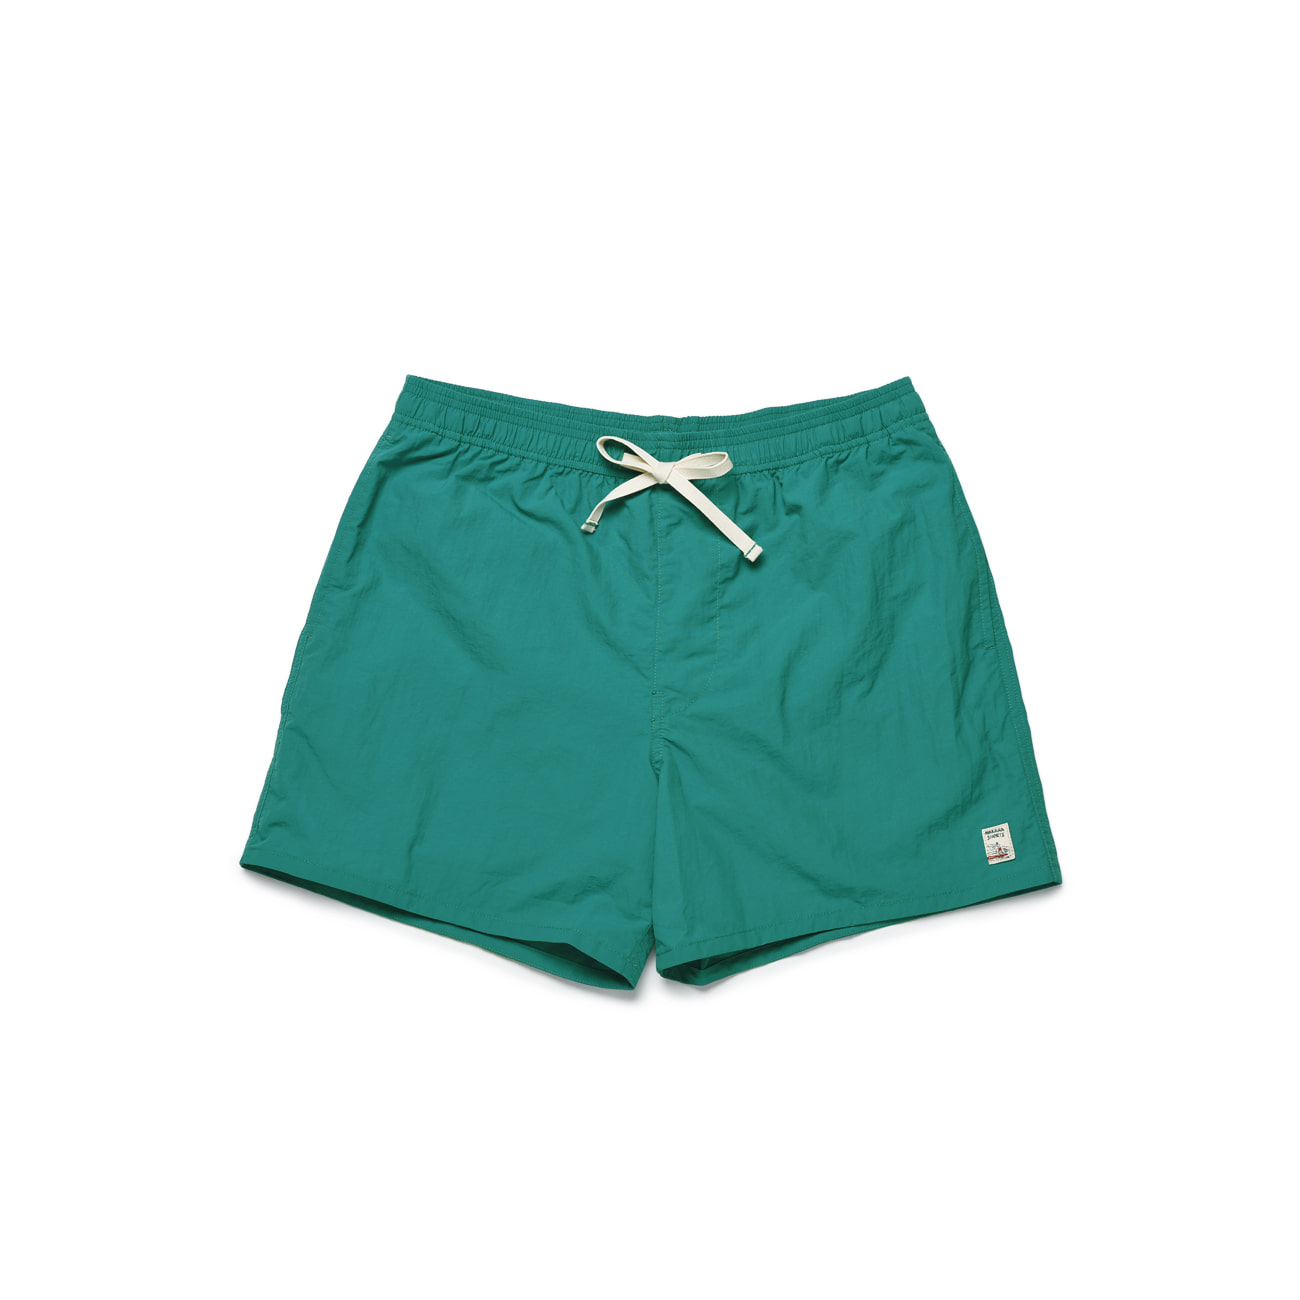 M.Nii Basic Shorts